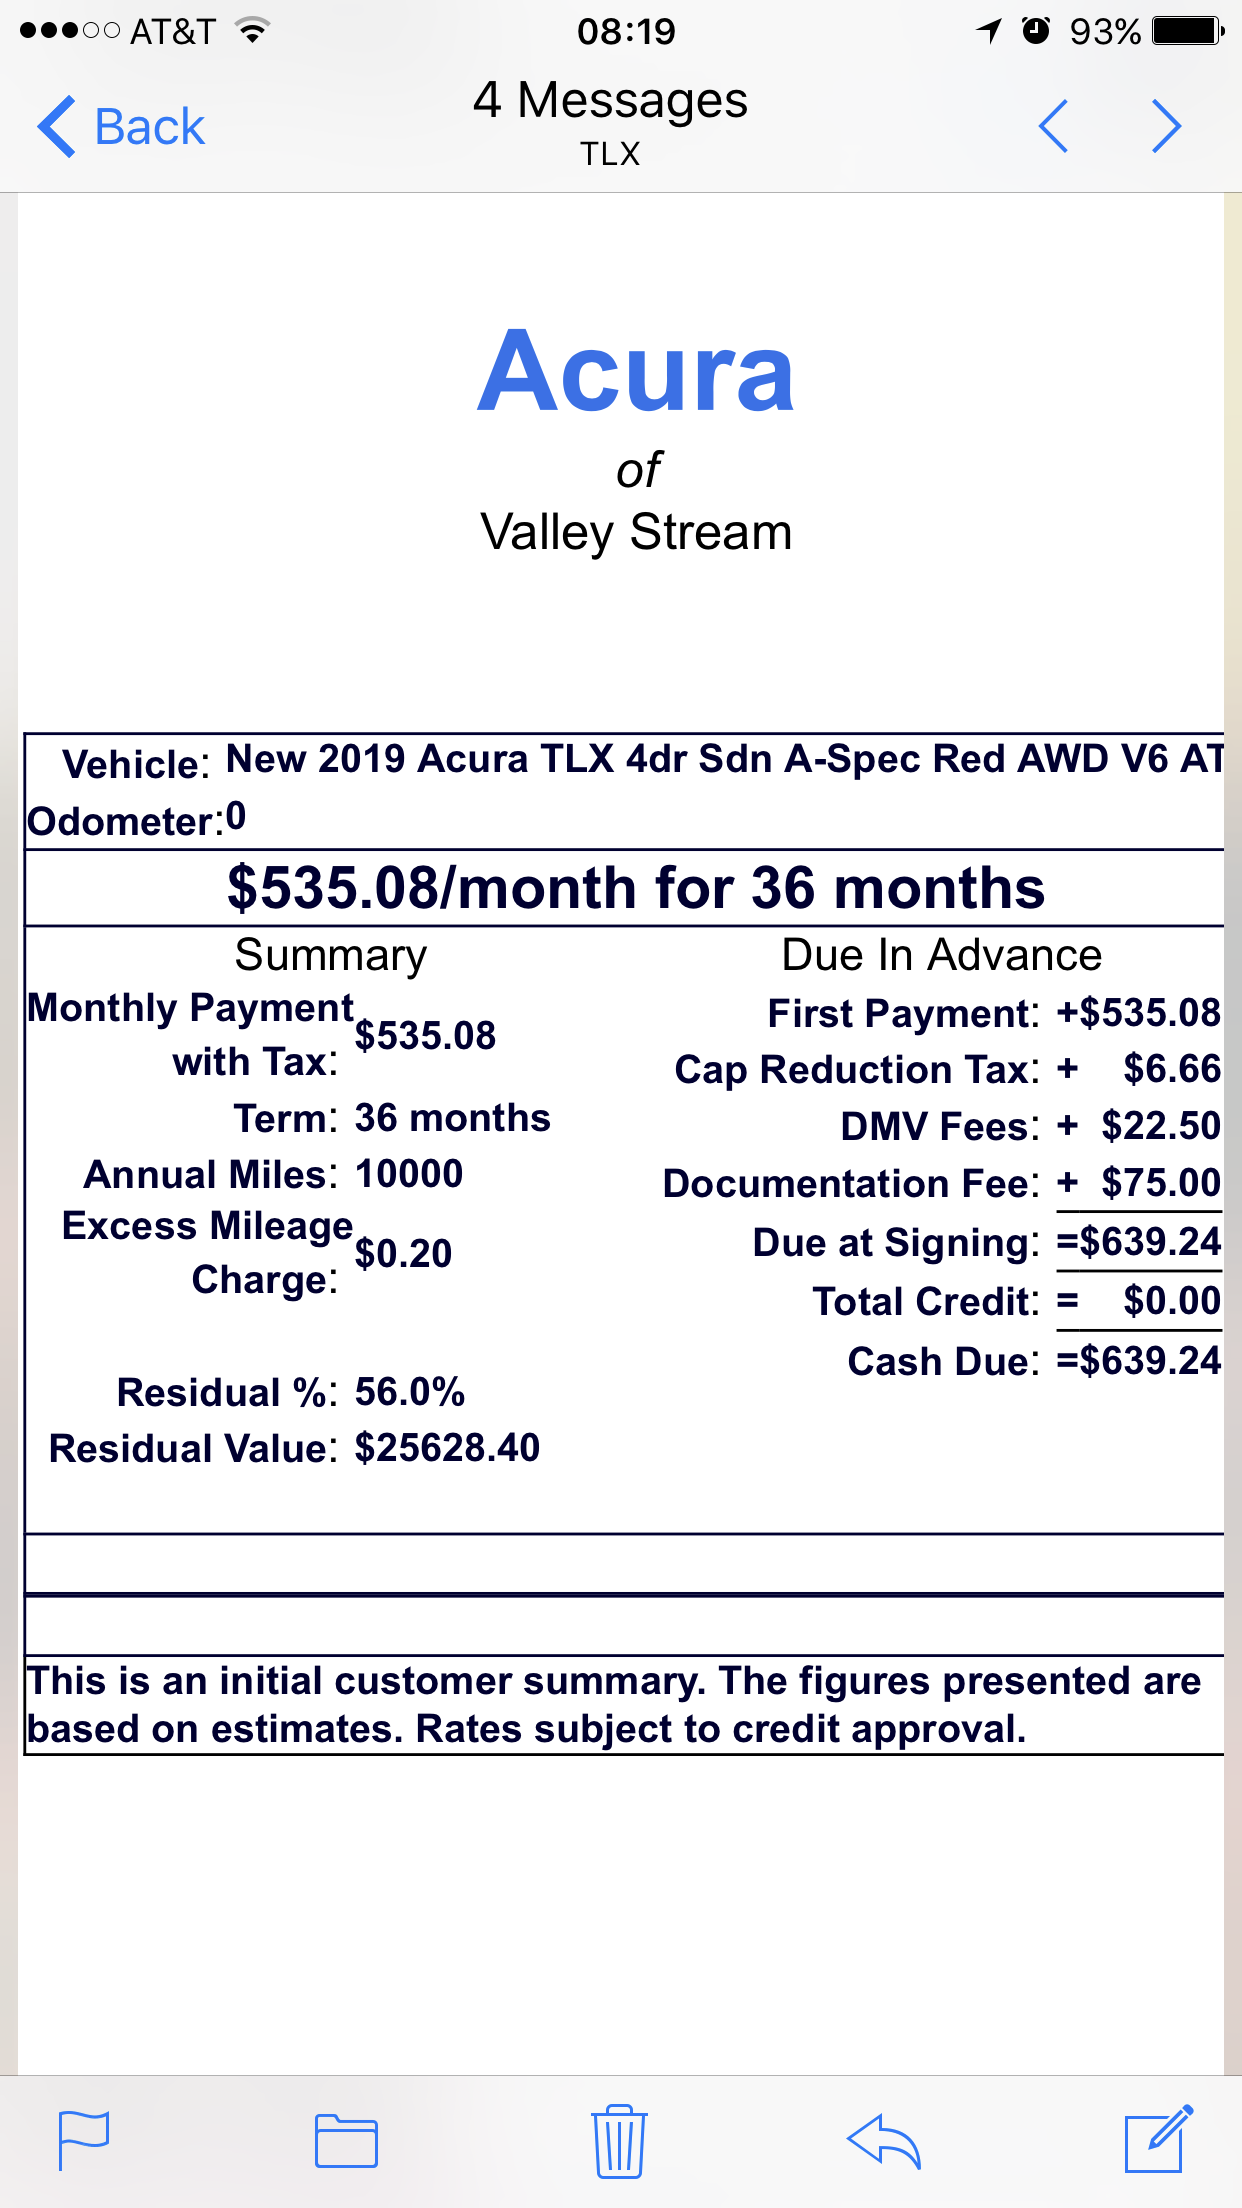 2019 Acura TLX Lease Deals and Prices — Car Forums at ...